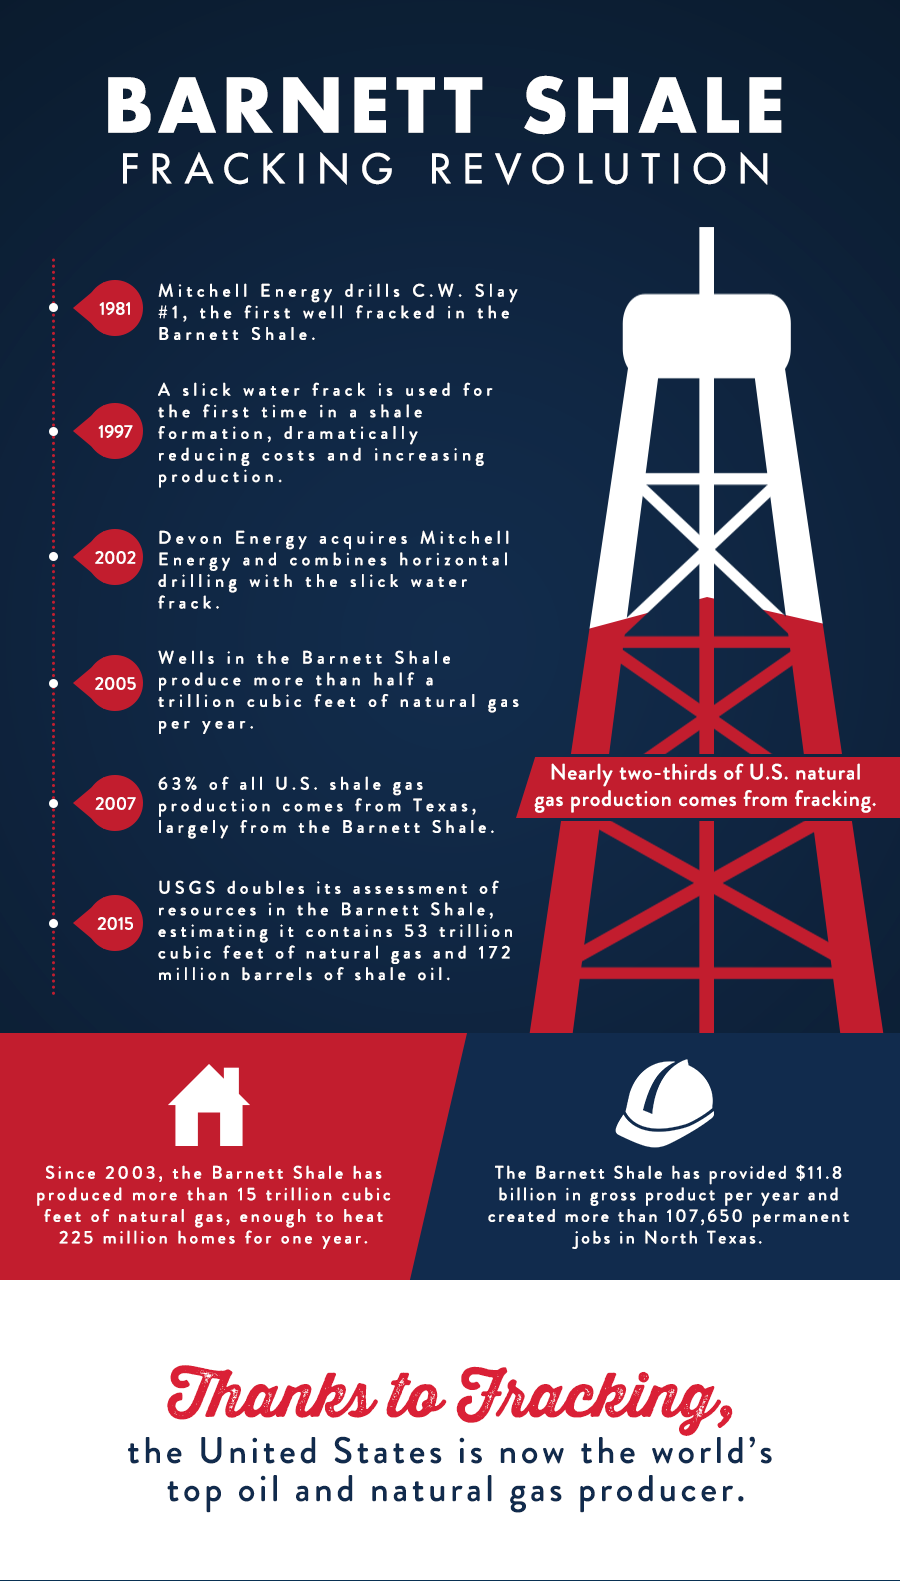 NTNG_infographic_BarnettShale5.png